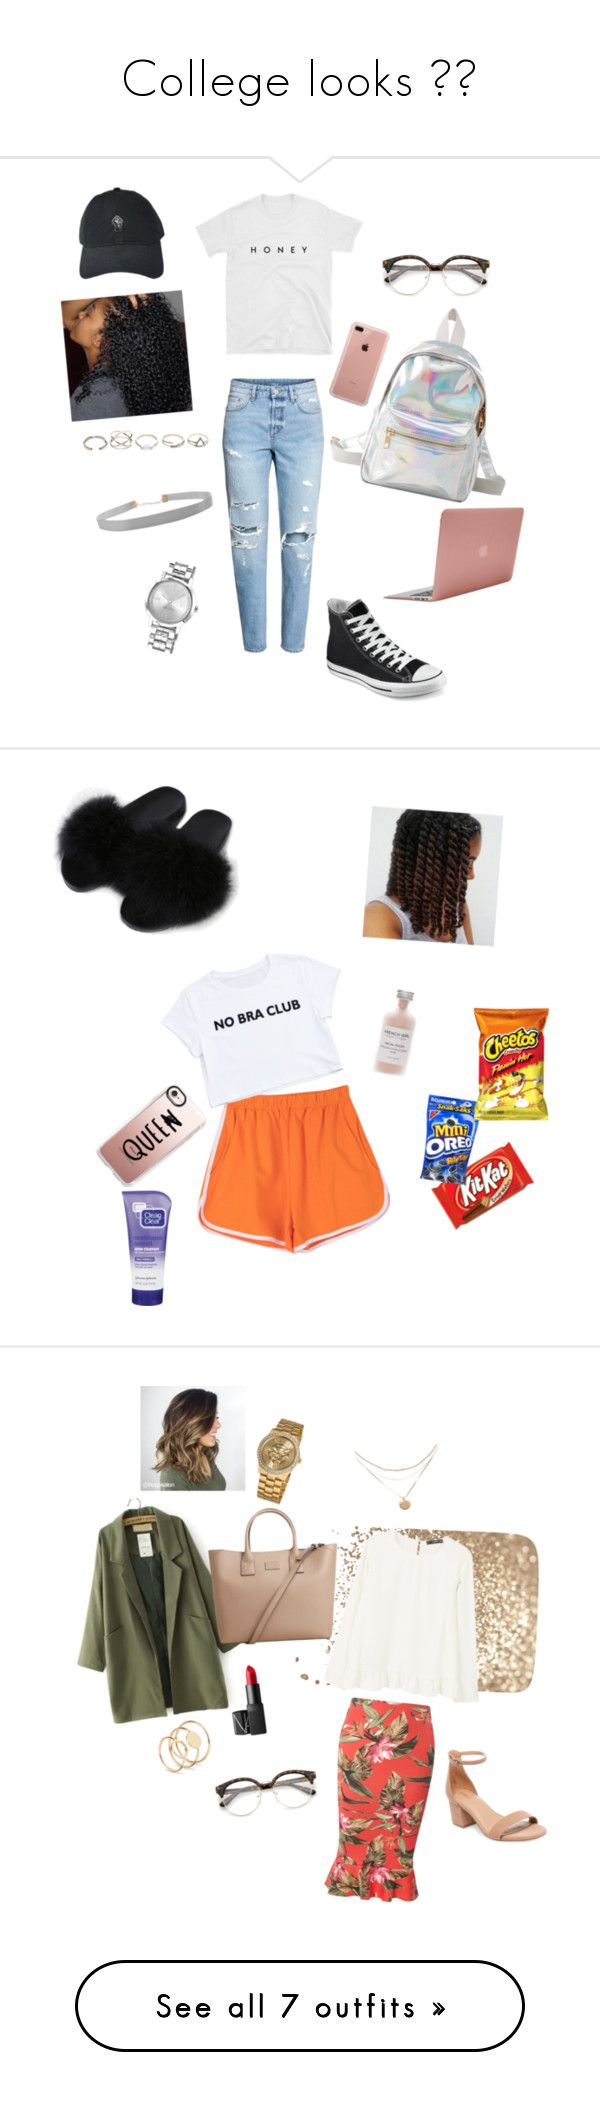 College looks 🌹🔥 by danielsnaja on Polyvore featuring polyvore, fashion, style, Converse, Charlotte Russe, Belkin, Incase, GUESS, Humble Chic, Nine West, clothing, Casetify, Clean & Clear, French Girl, Dorothy Perkins, MANGO, Vernier, NARS Cosmetics, Topshop, Vans, JanSport, SO, Ana Accessories, Bobbi Brown Cosmetics, ban.do, Gap, CLUSE, J.Crew, Sole Society, Lydell NYC, Forever 21, Geneva, Paper Mate and WithChic